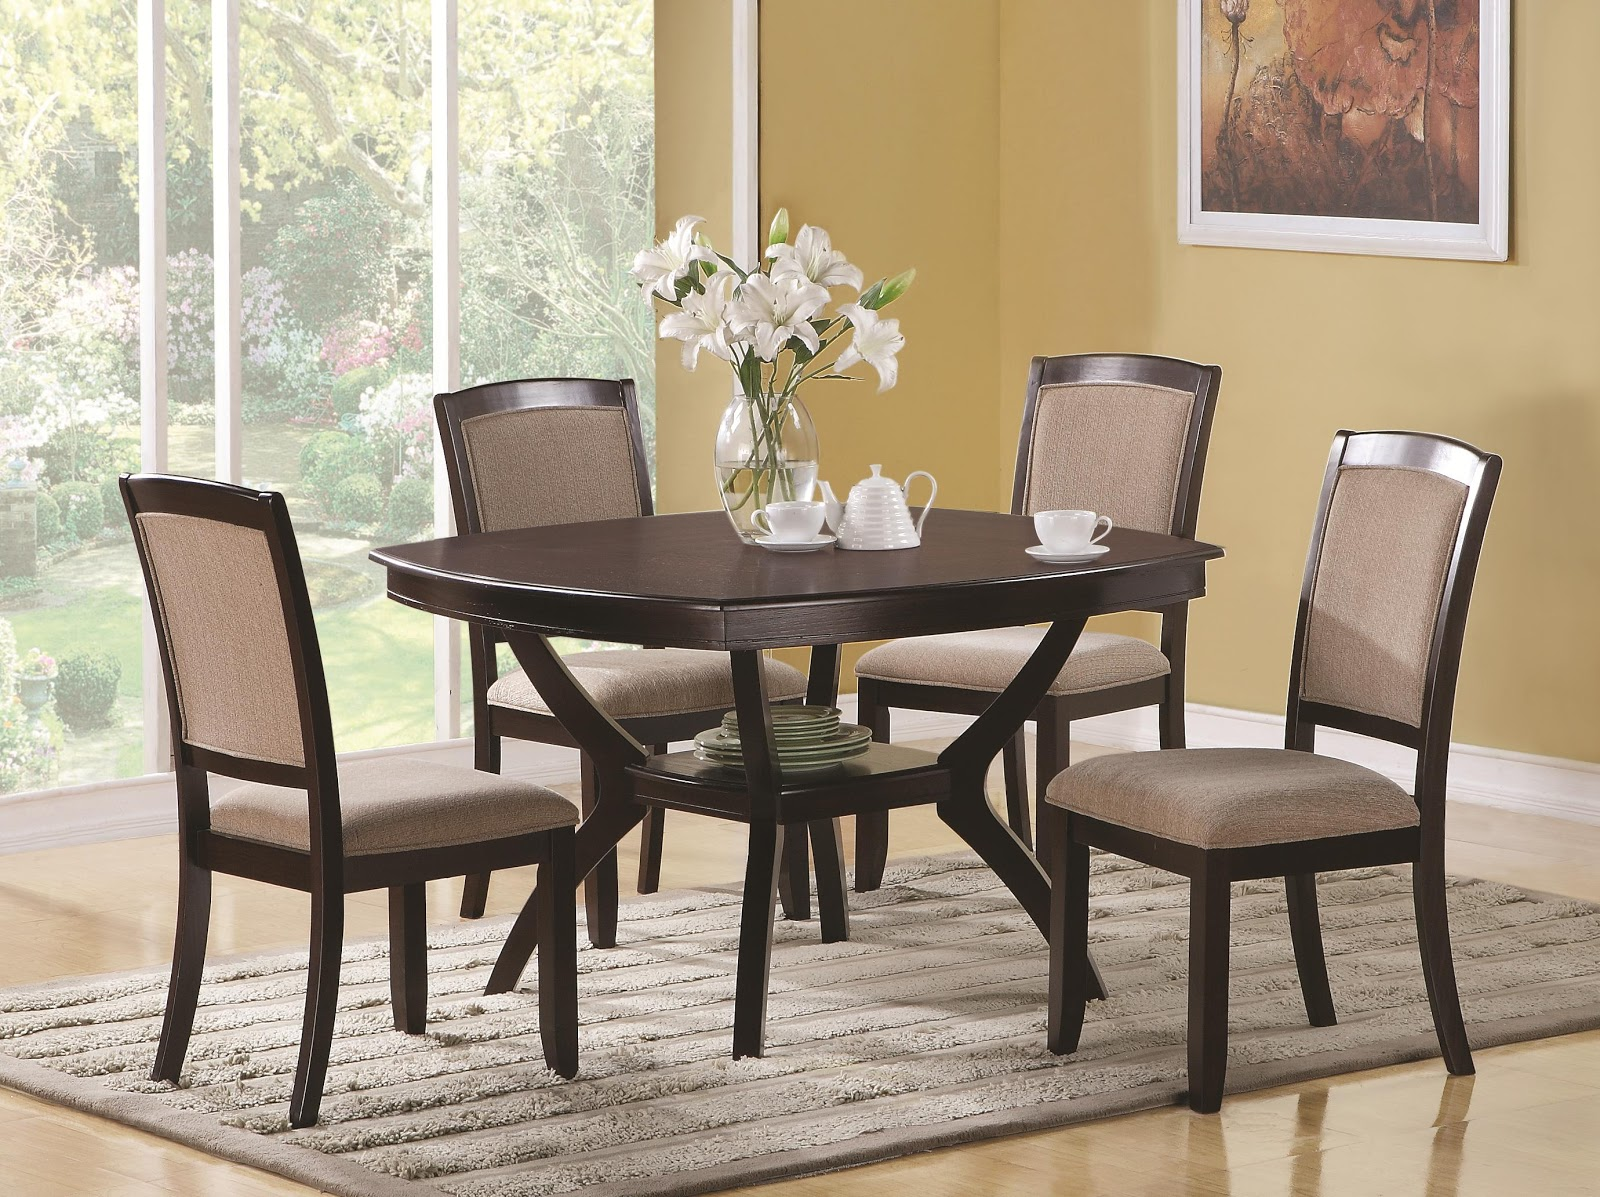 Round Dining Room Sets  DINING ROOMUNIQUE DINETTE